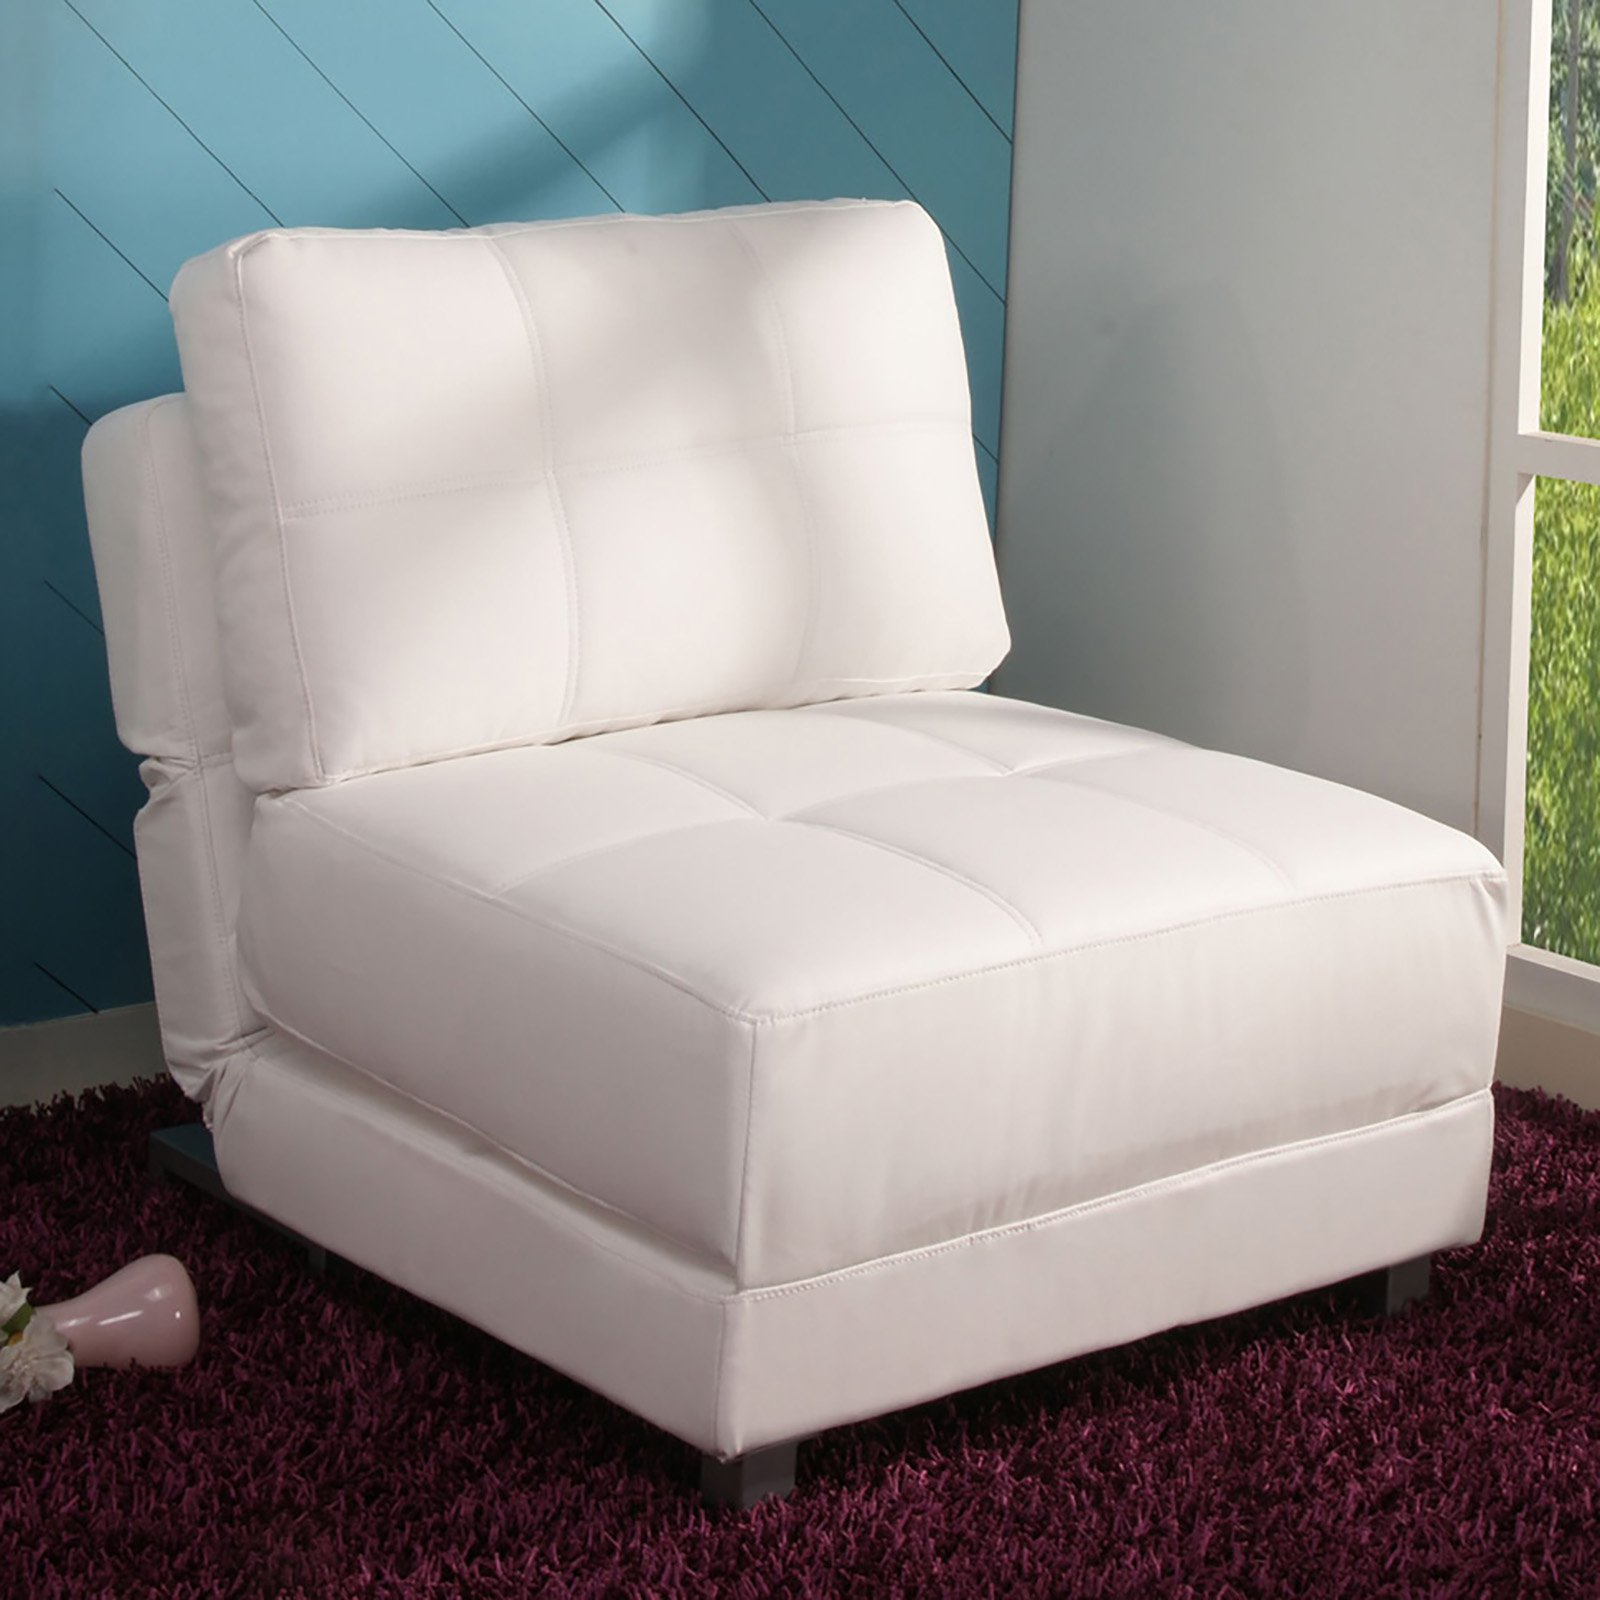 Gold Sparrow New York Convertible Chair Bed